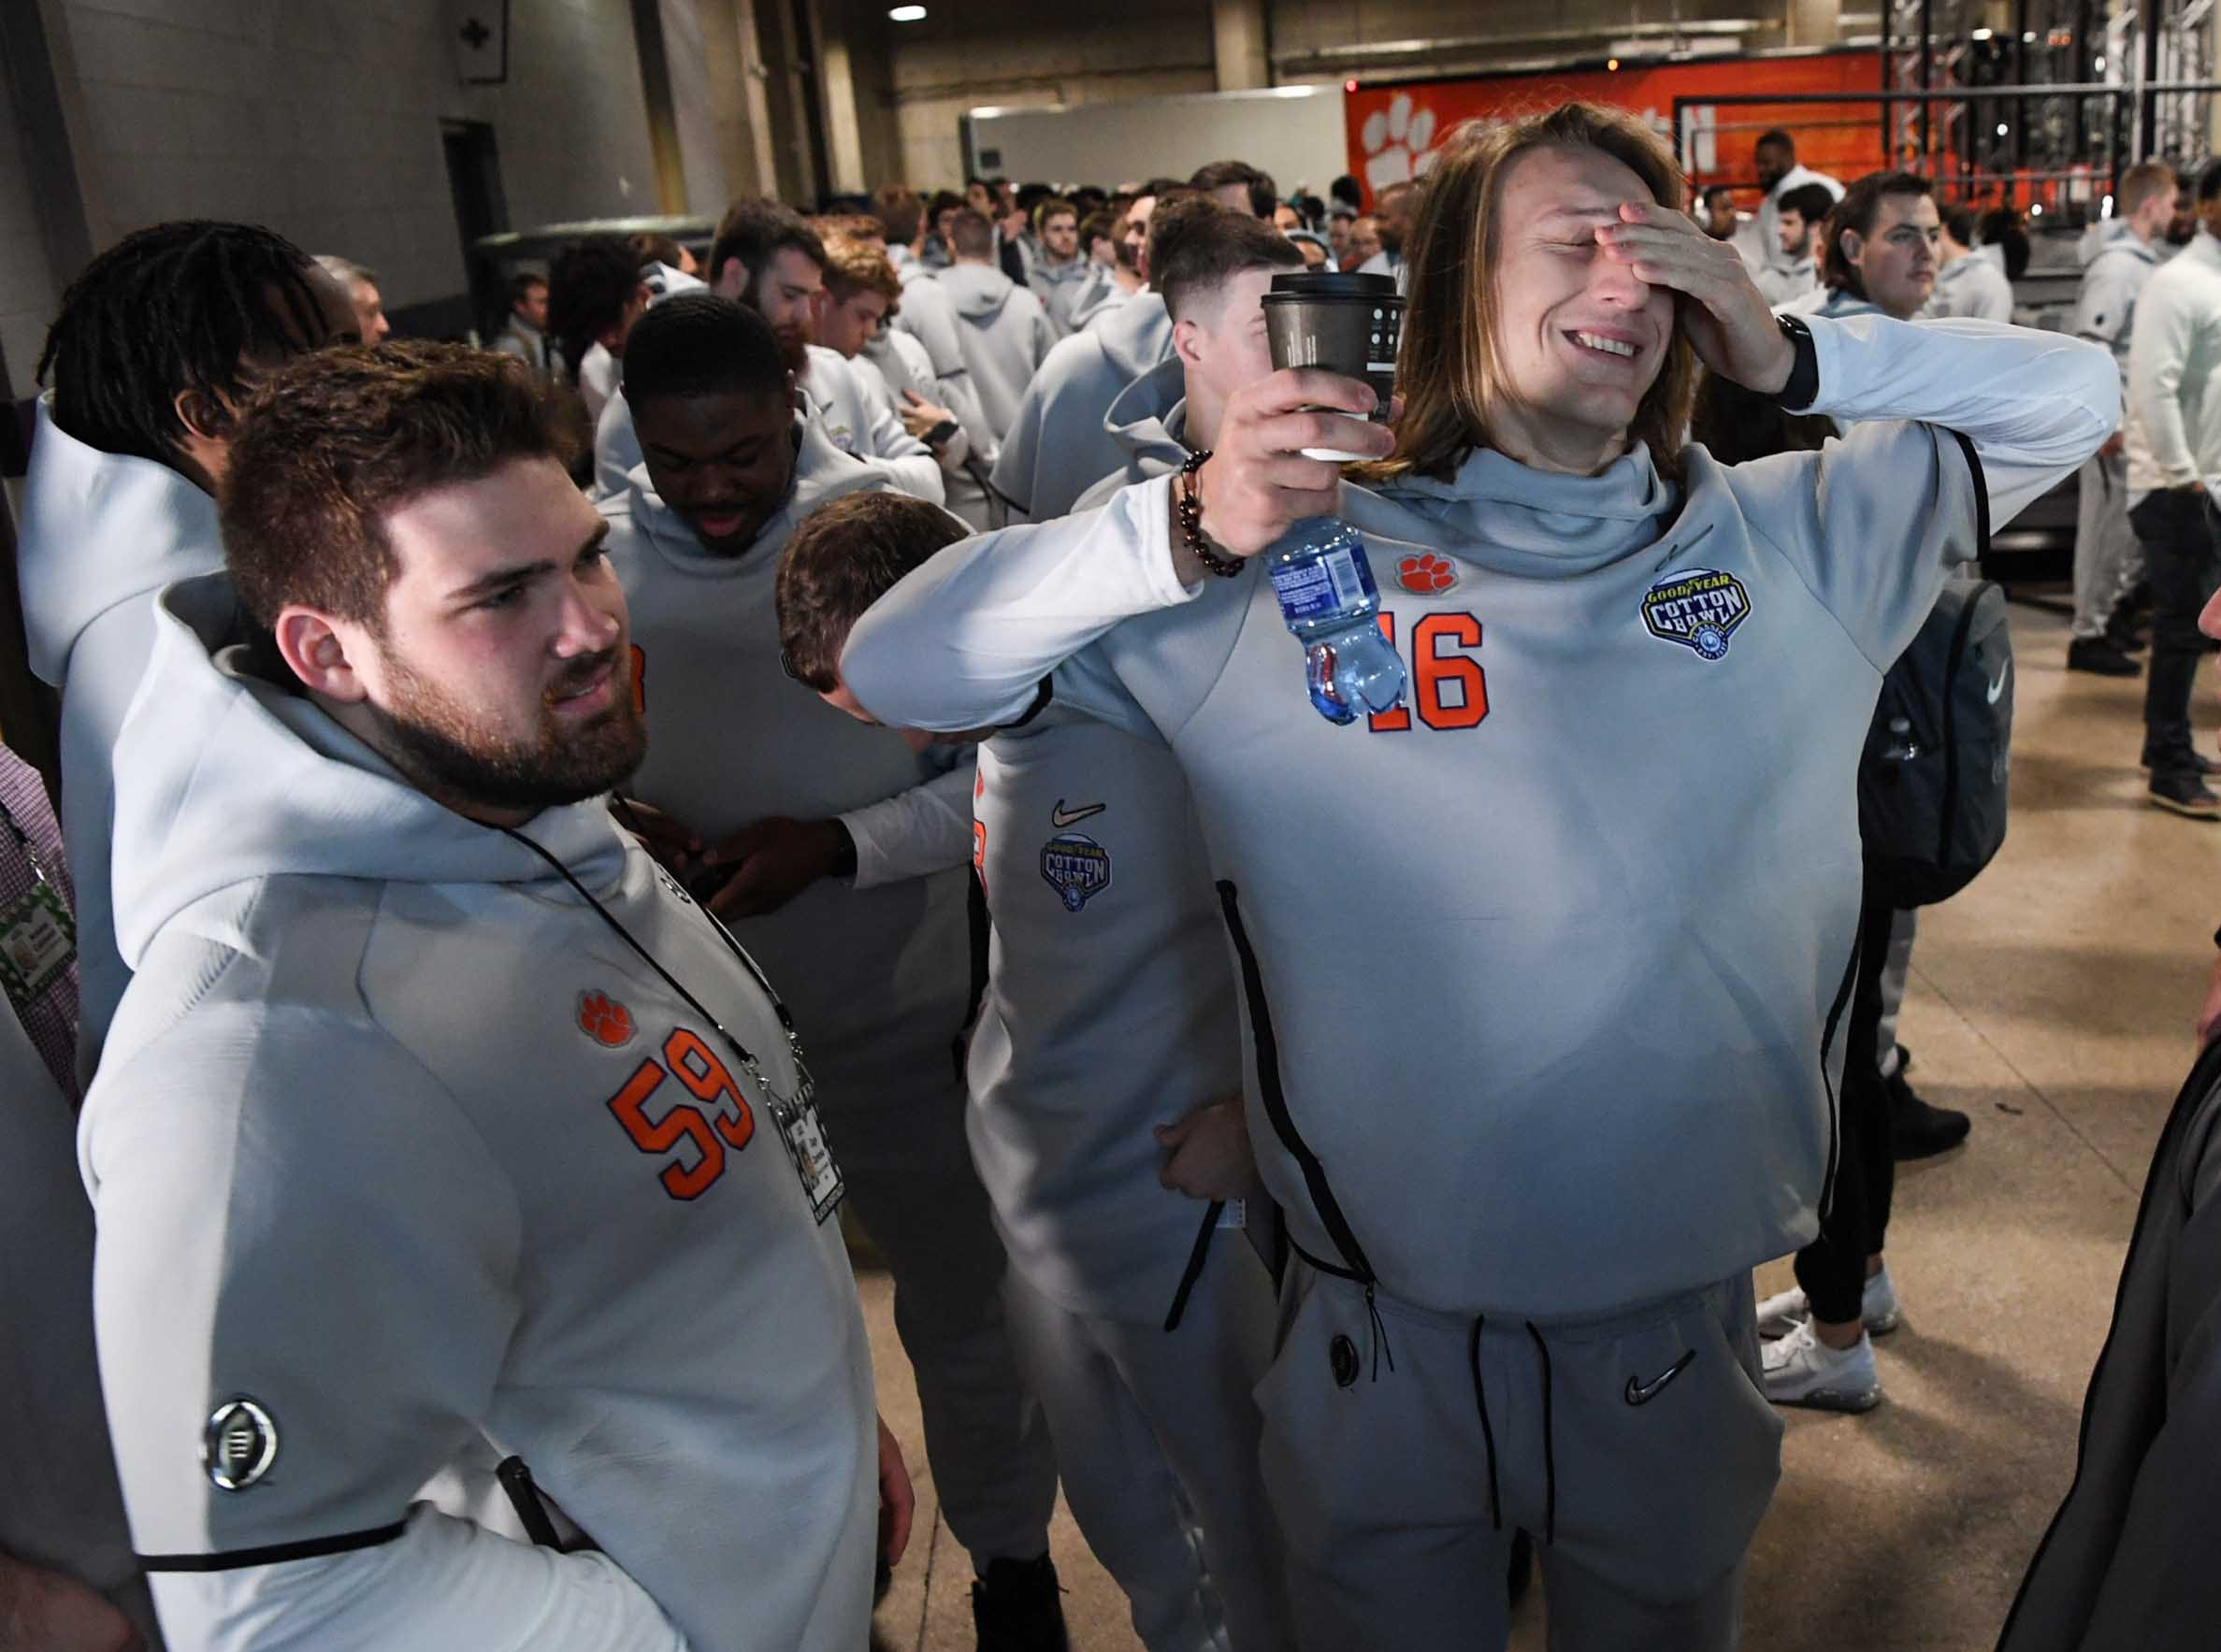 Clemson quarterback Trevor Lawrence, right, stretches near offensive lineman Gage Cervenka, left, before entering Media Day for Clemson and Notre Dame at the AT&T Stadium in Dallas December 27, 2018.